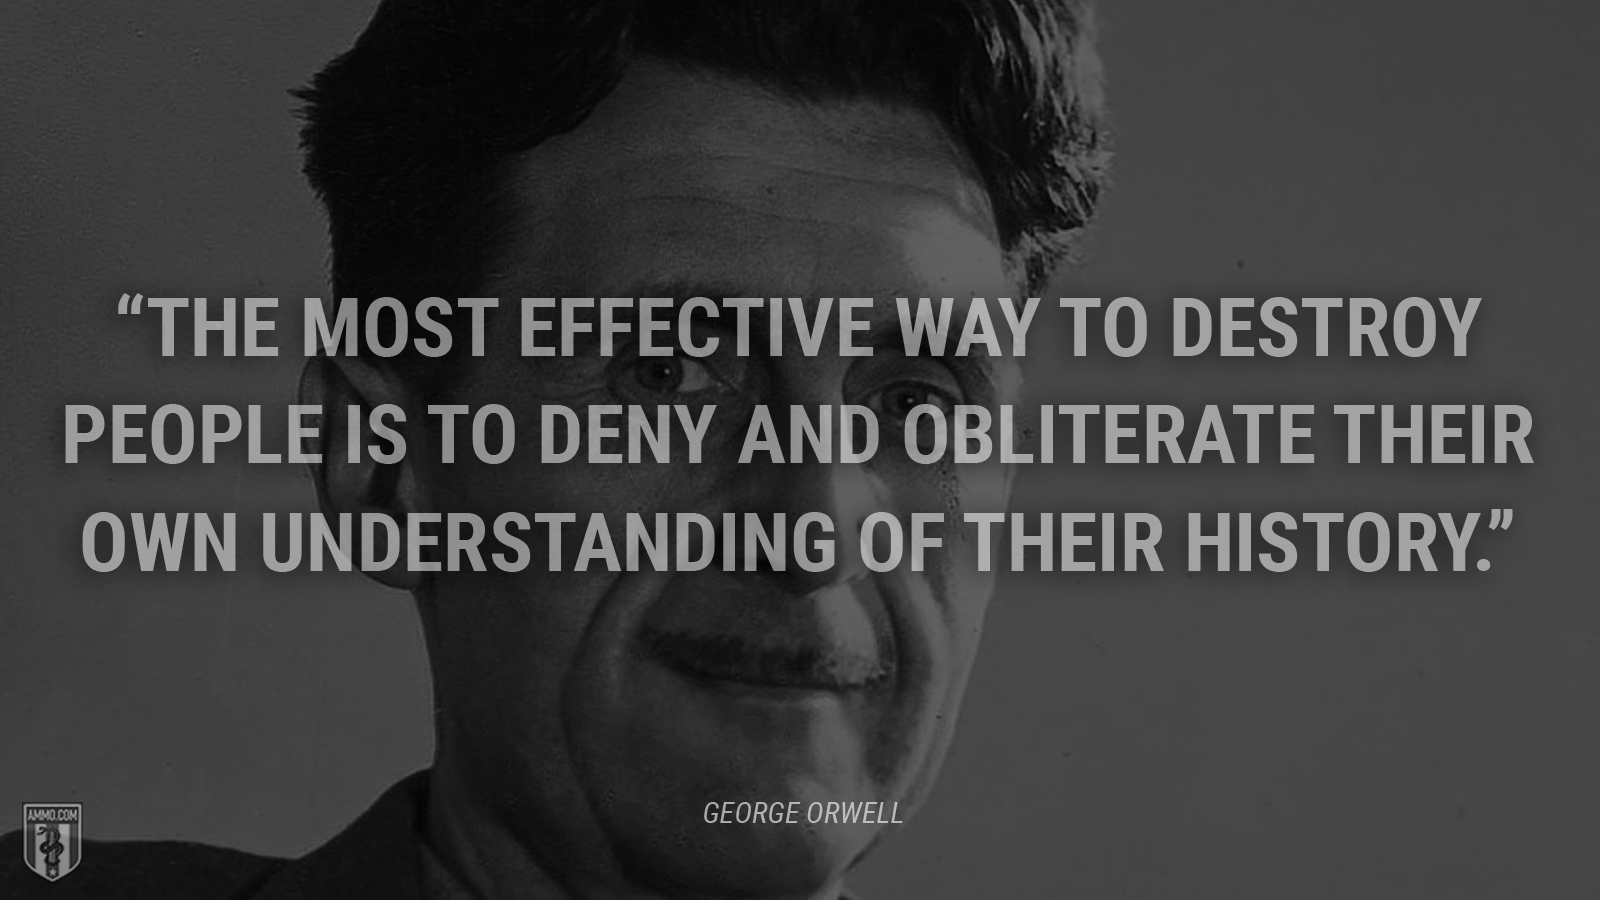 """The most effective way to destroy people is to deny and obliterate their own understanding of their history."" - George Orwell"